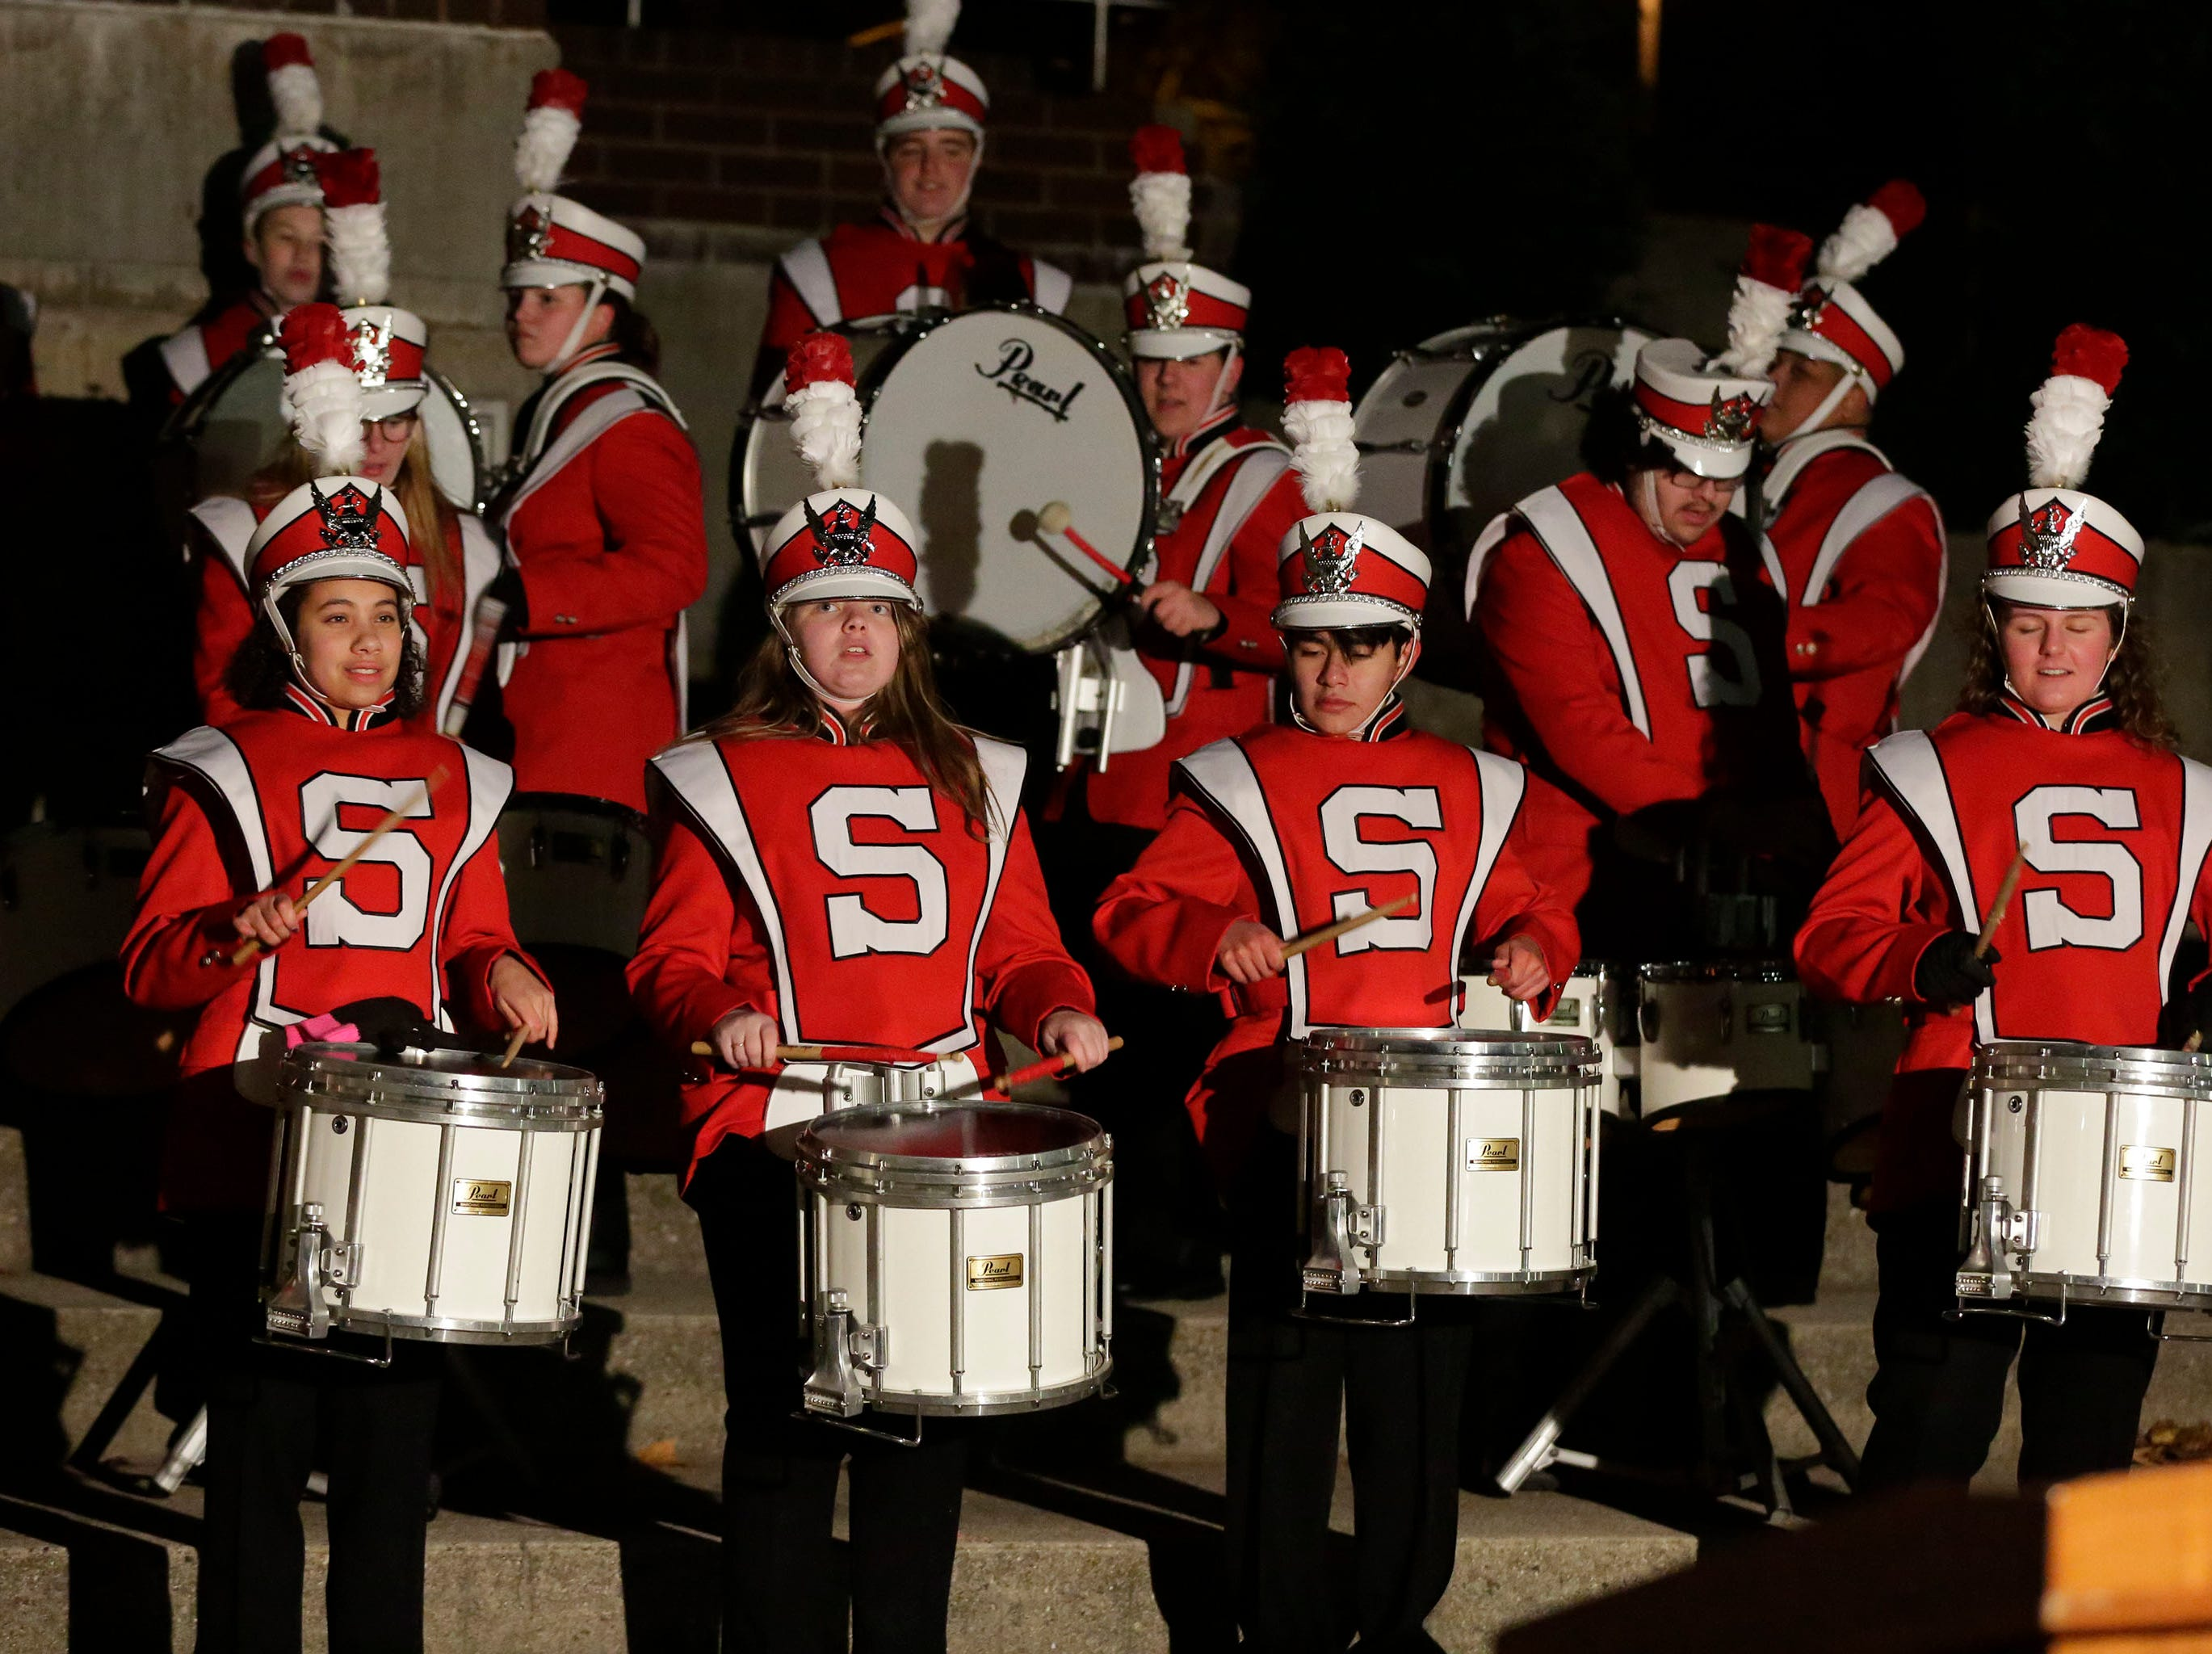 Sheboygan South's drum line performs before the tree lighting ceremony following the 26th Annual Jaycees Holiday Parade, Sunday, November 25, 2018 in Sheboygan, Wis.